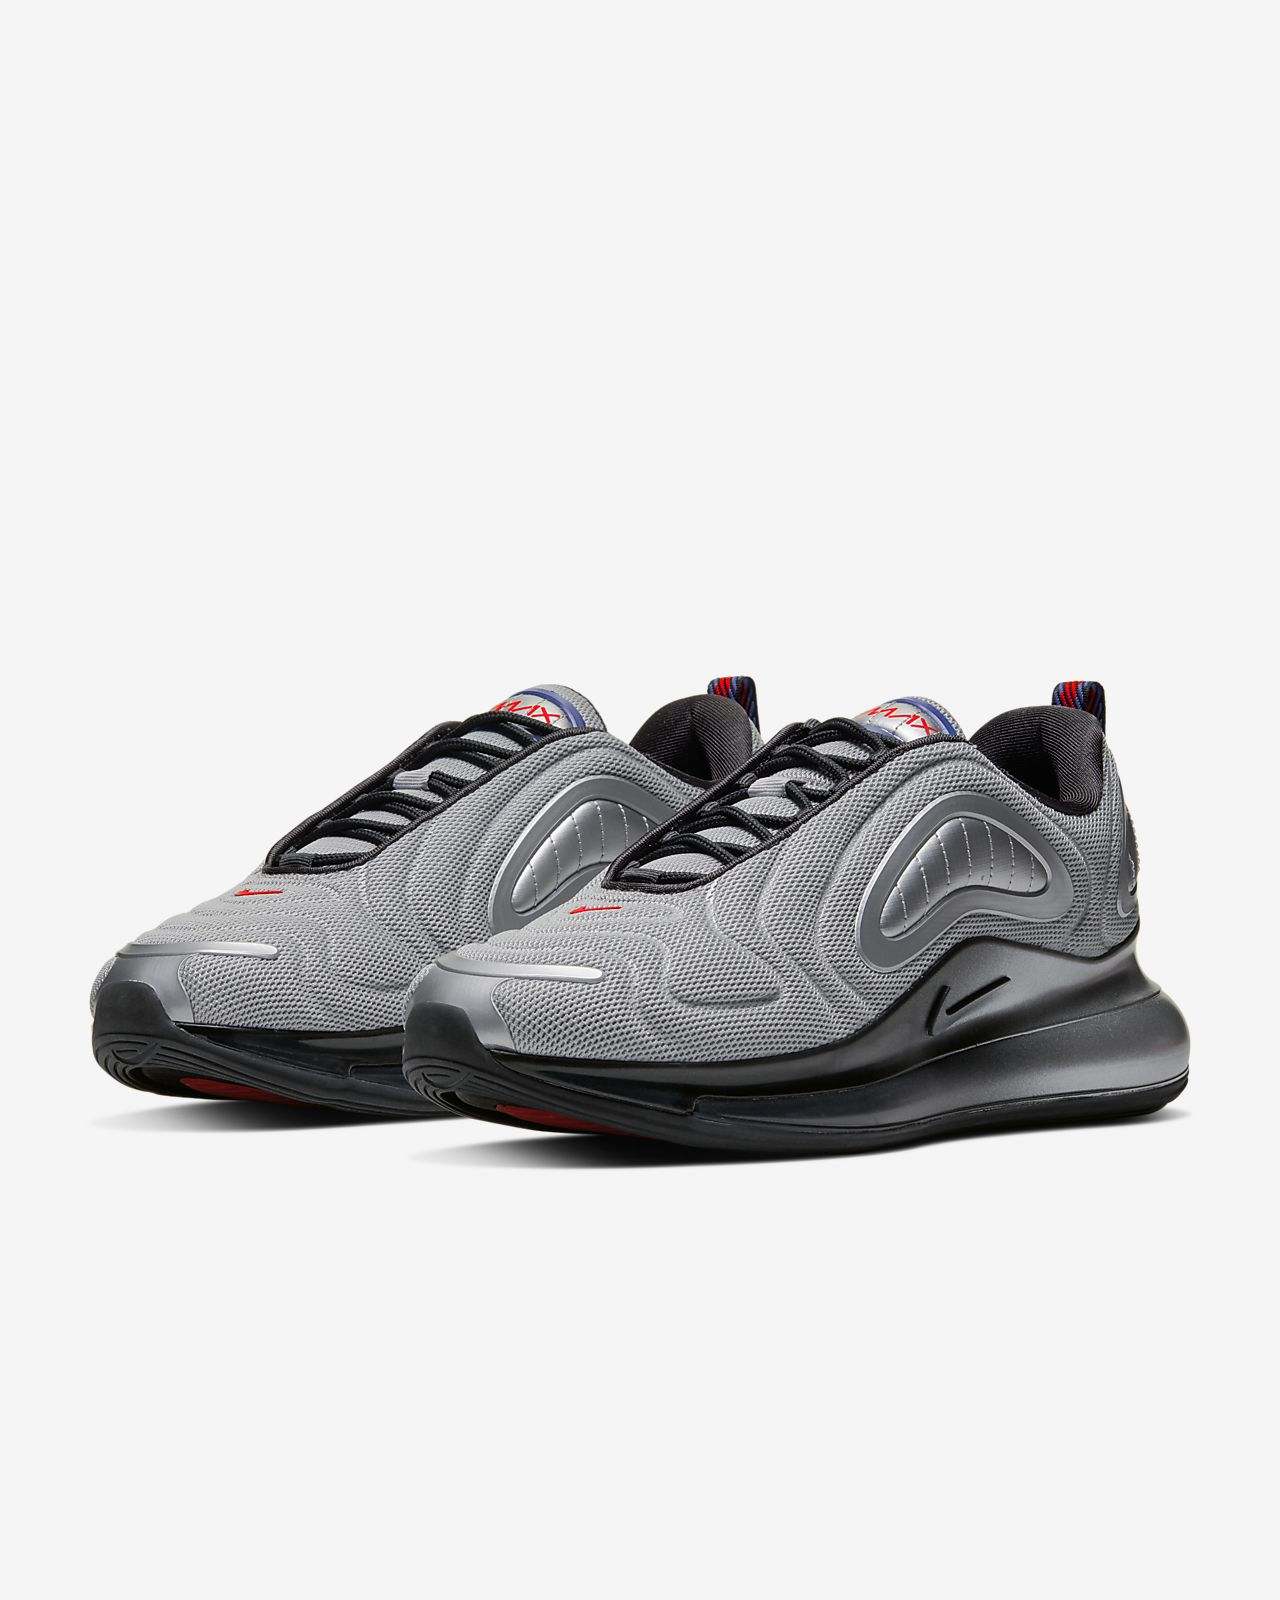 Nike Air Max Plus | Nike | Sole Collector